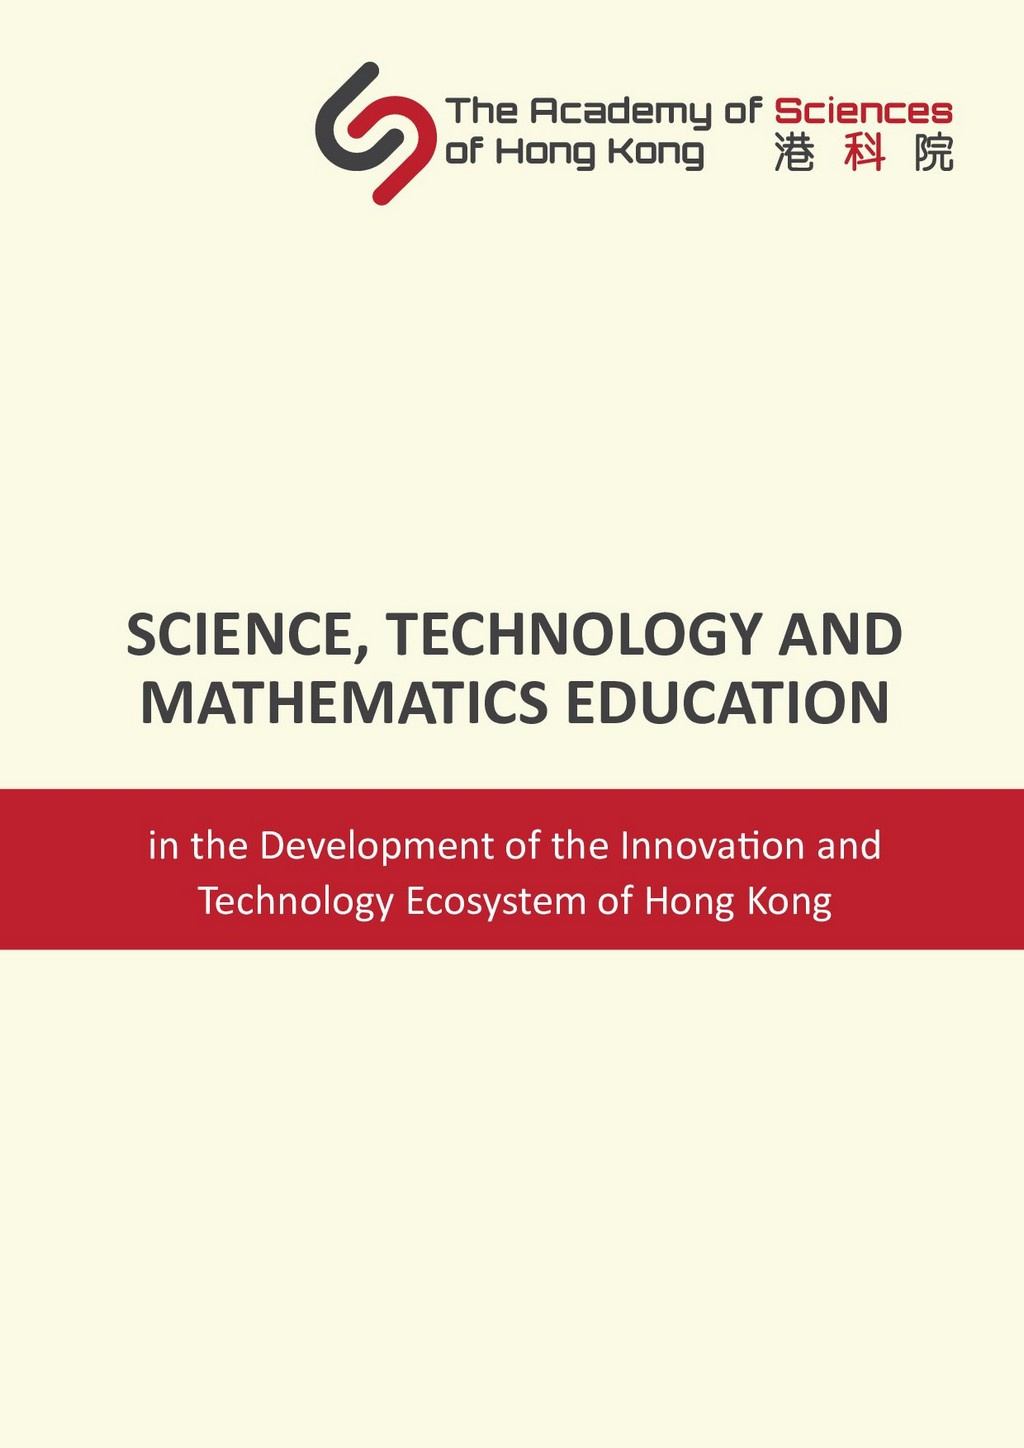 """Science, Technology and Mathematics Education in the development of the Innovation and Technology Ecosystem of Hong Kong"""